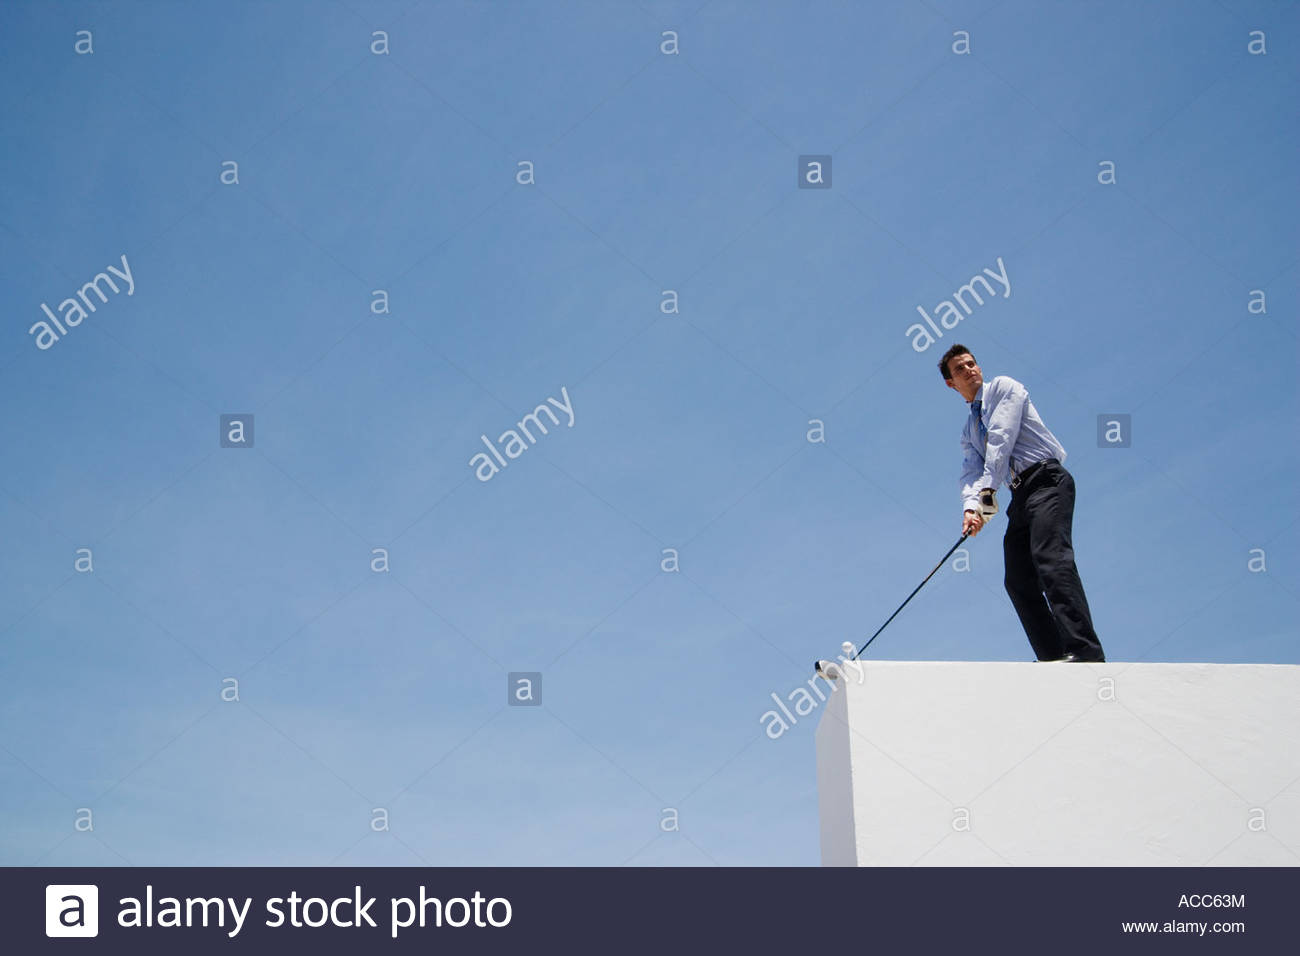 Businessman golfing on roof - Stock Image